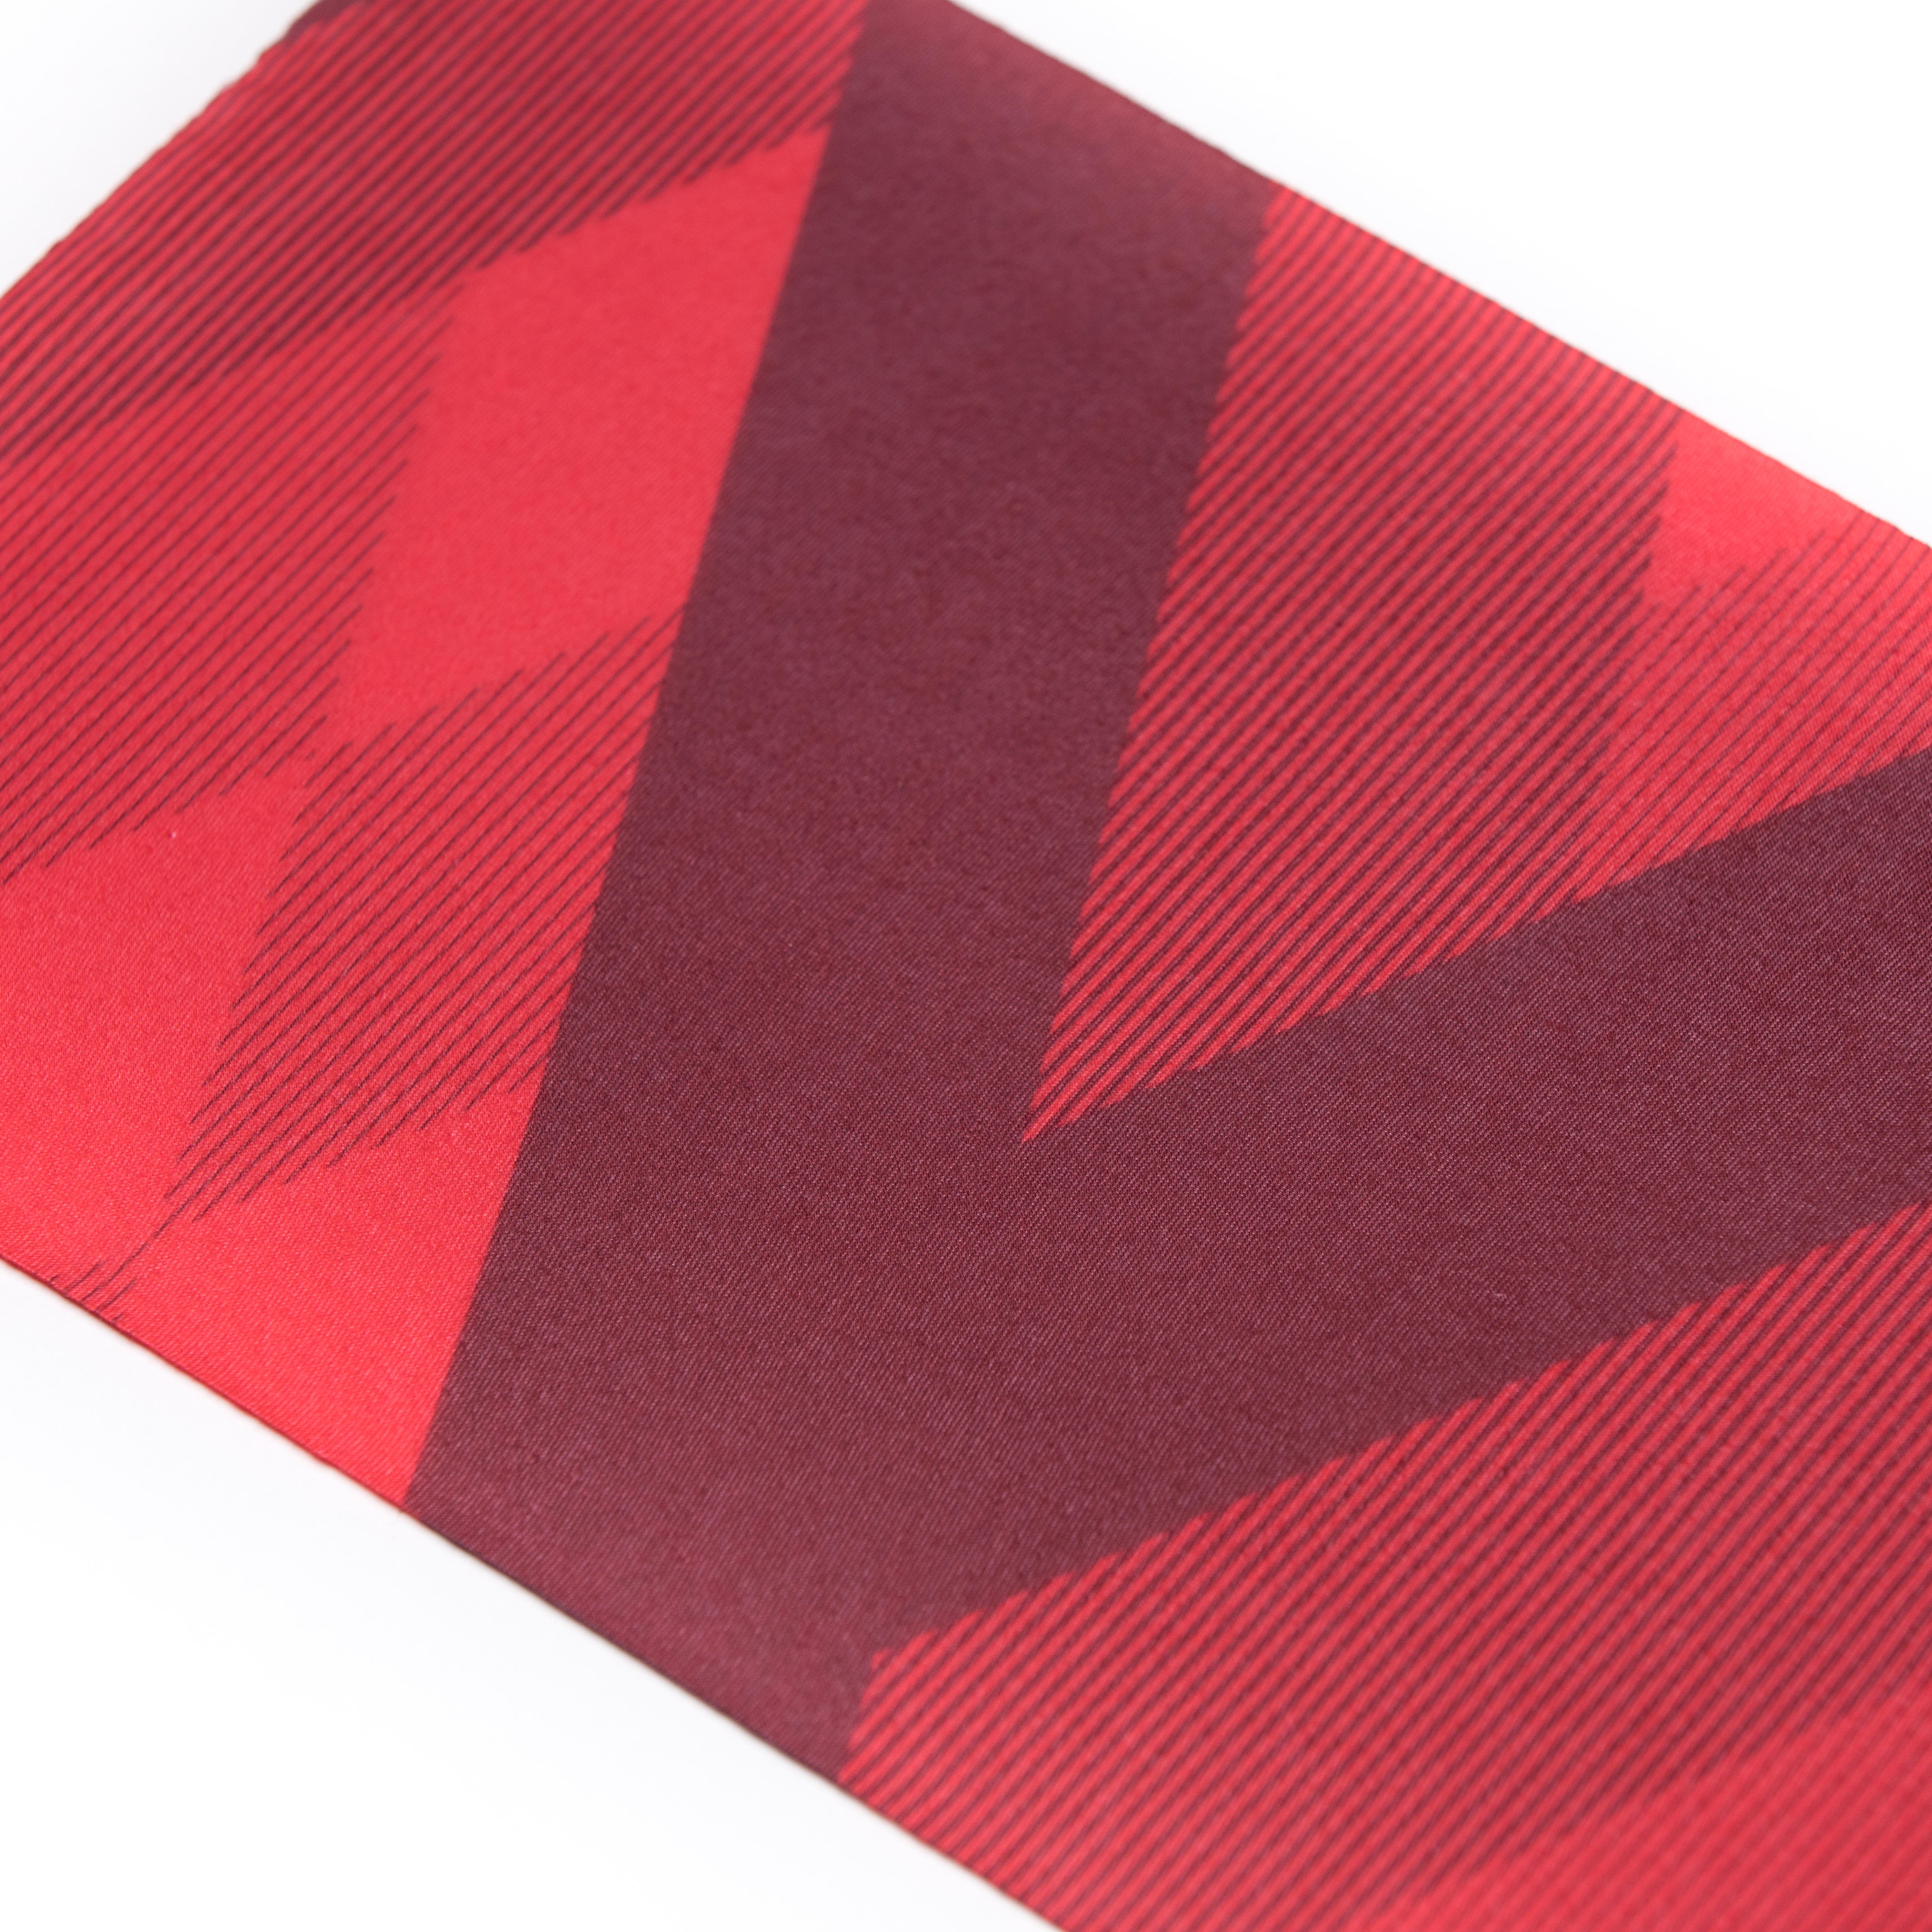 RoadR 100 Cycling Neck Warmer - Bright Red